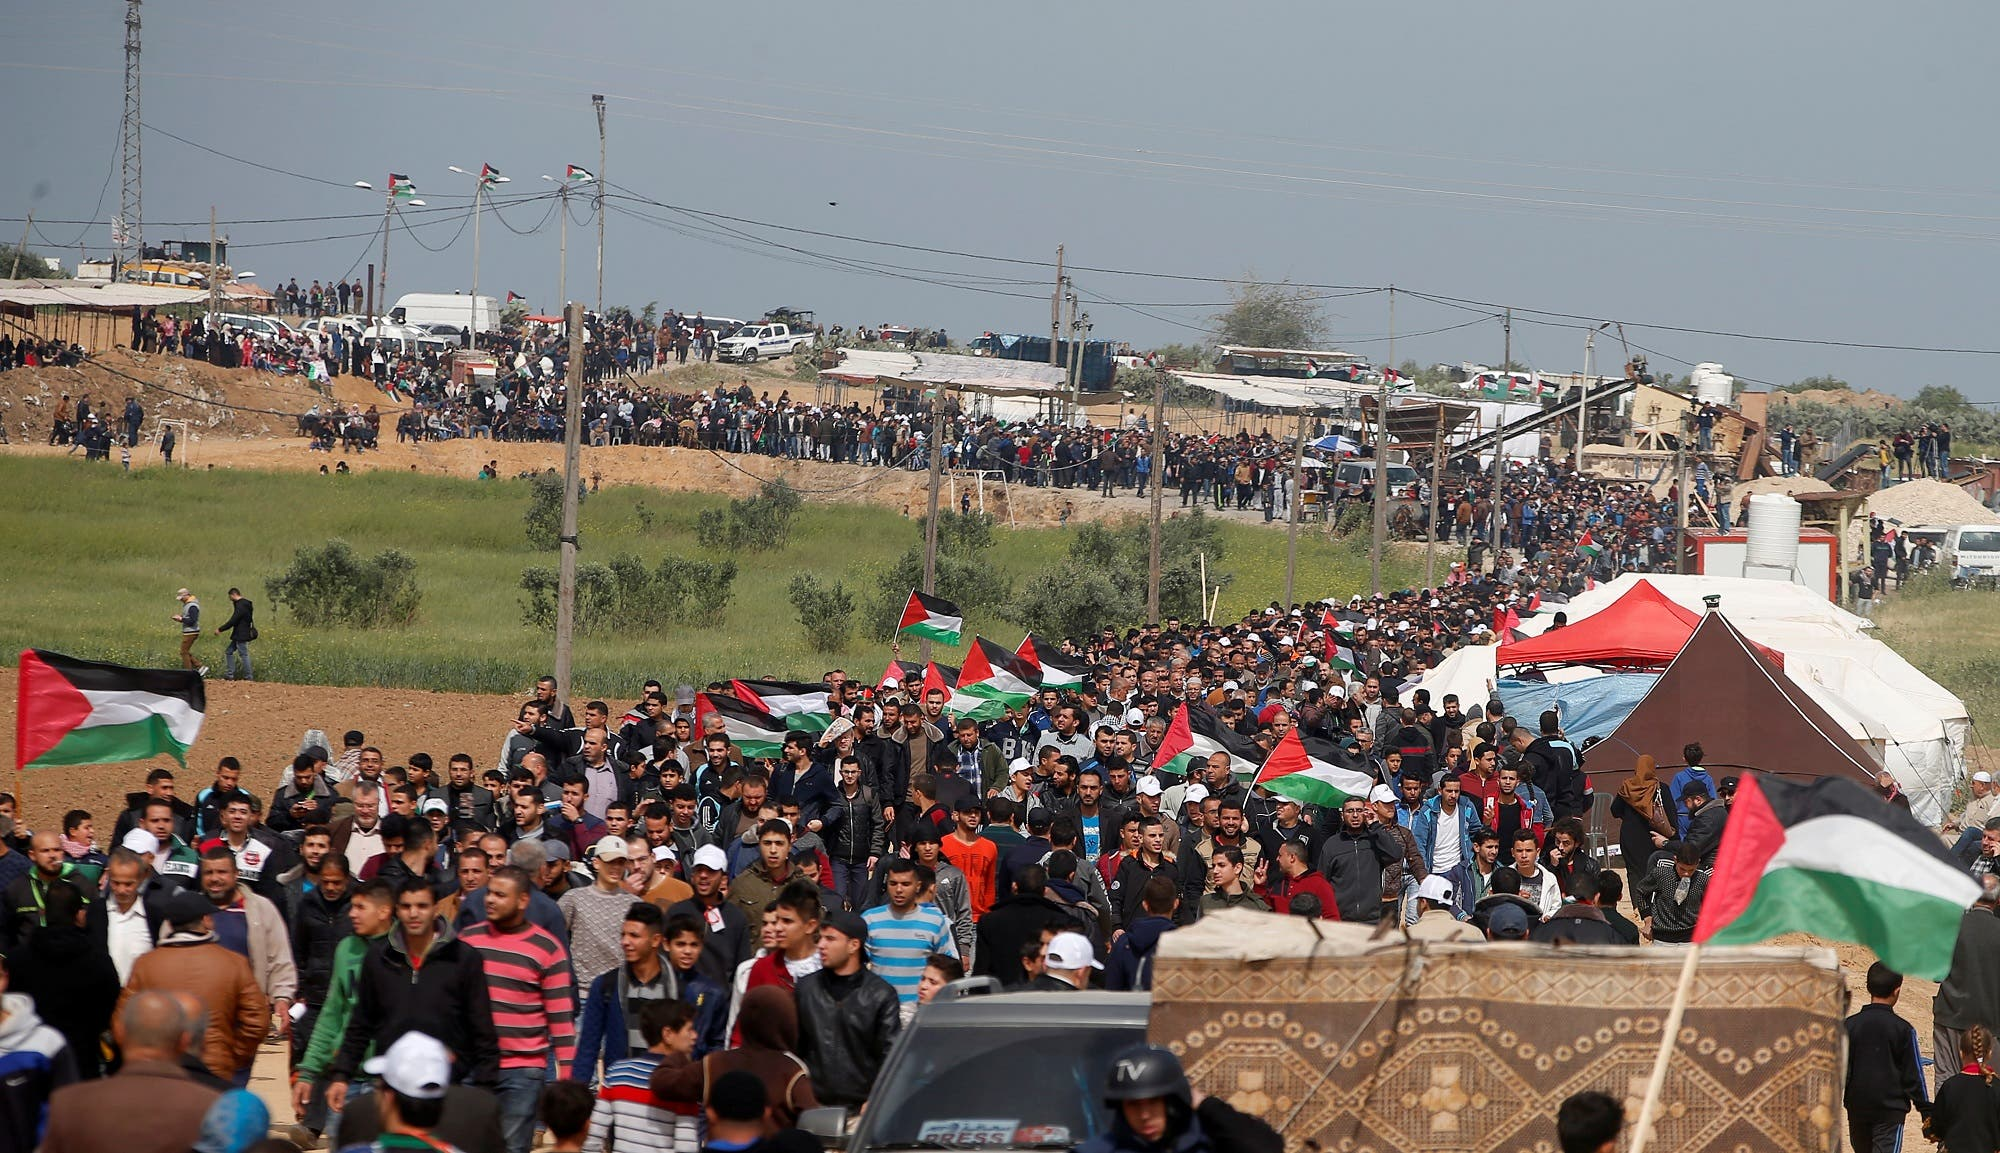 Palestinians attend a tent city protest along the Israel border with Gaza, demanding the right to return to their homeland, east of Gaza City March 30, 2018. REUTERS